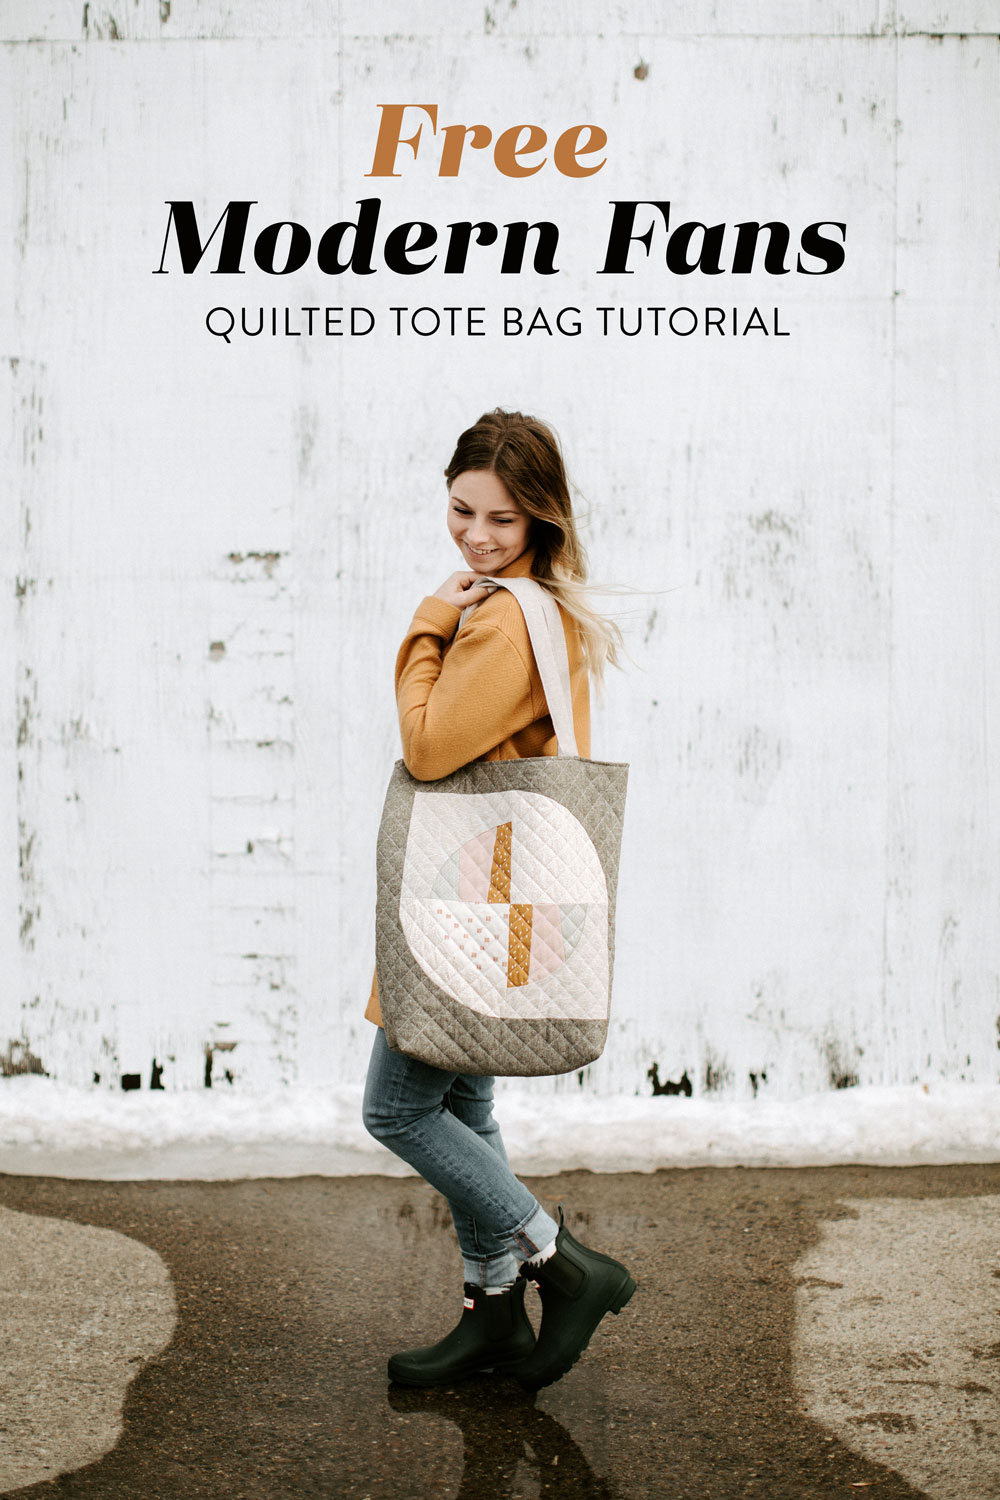 This FREE quilted tote bag tutorial shows step by step how to create a large tote bag using the Modern Fans quilt block pattern. suzyquilts.com #freepattern